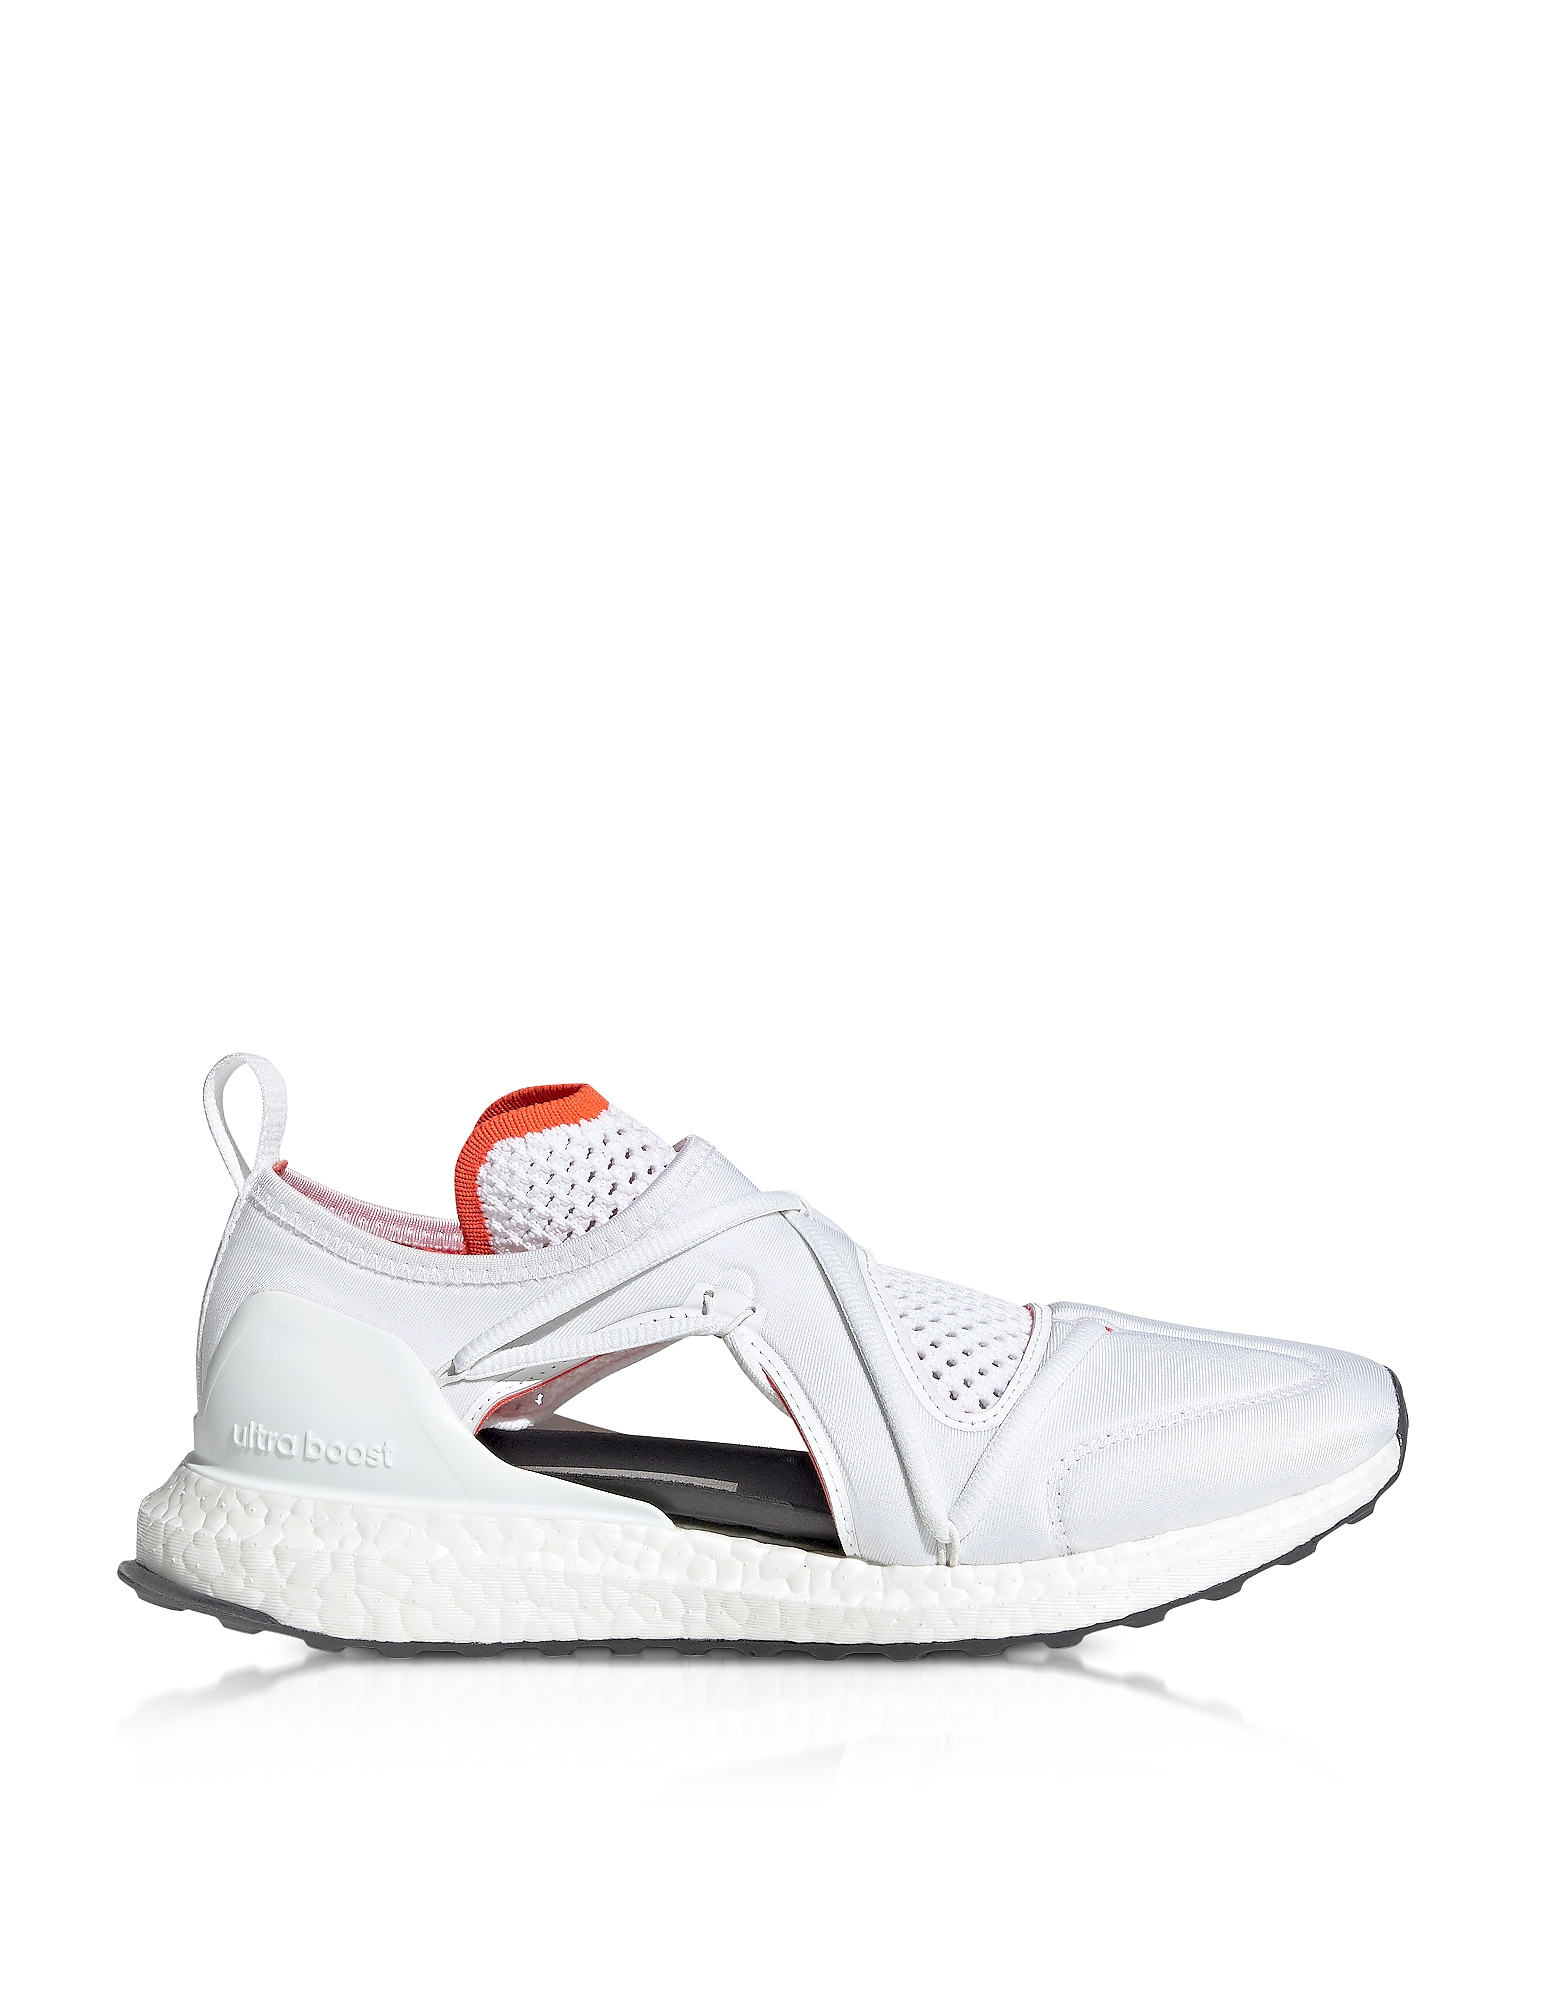 Adidas Stella McCartney Designer Shoes, Ultraboost T White Nylon Running Sneakers